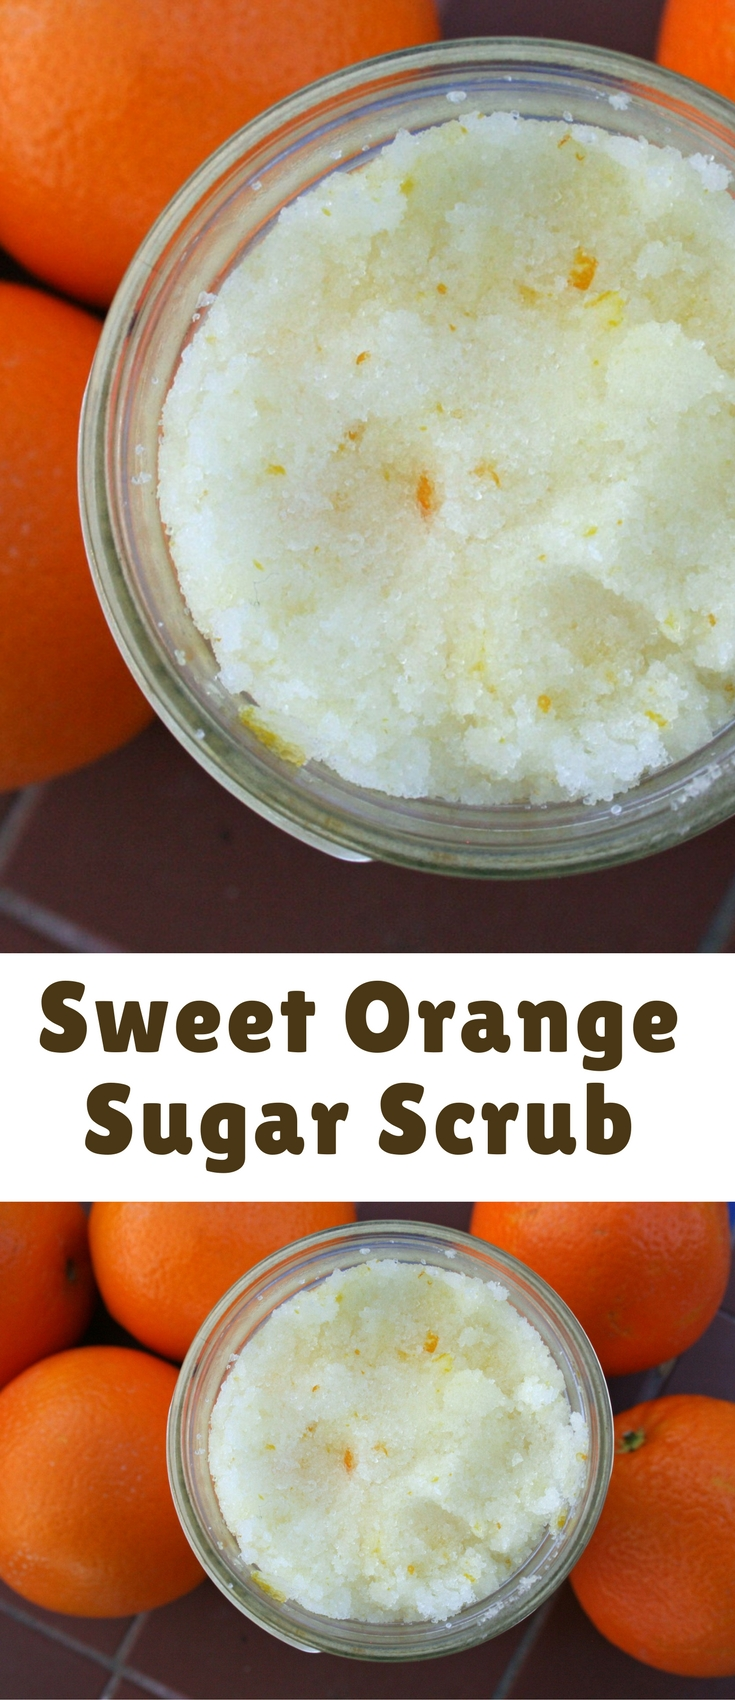 Sugar scrubs are not only easy to make, but they are cheaper than store bought. This Sweet Orange Sugar Scrub will feel like you are at a spa!